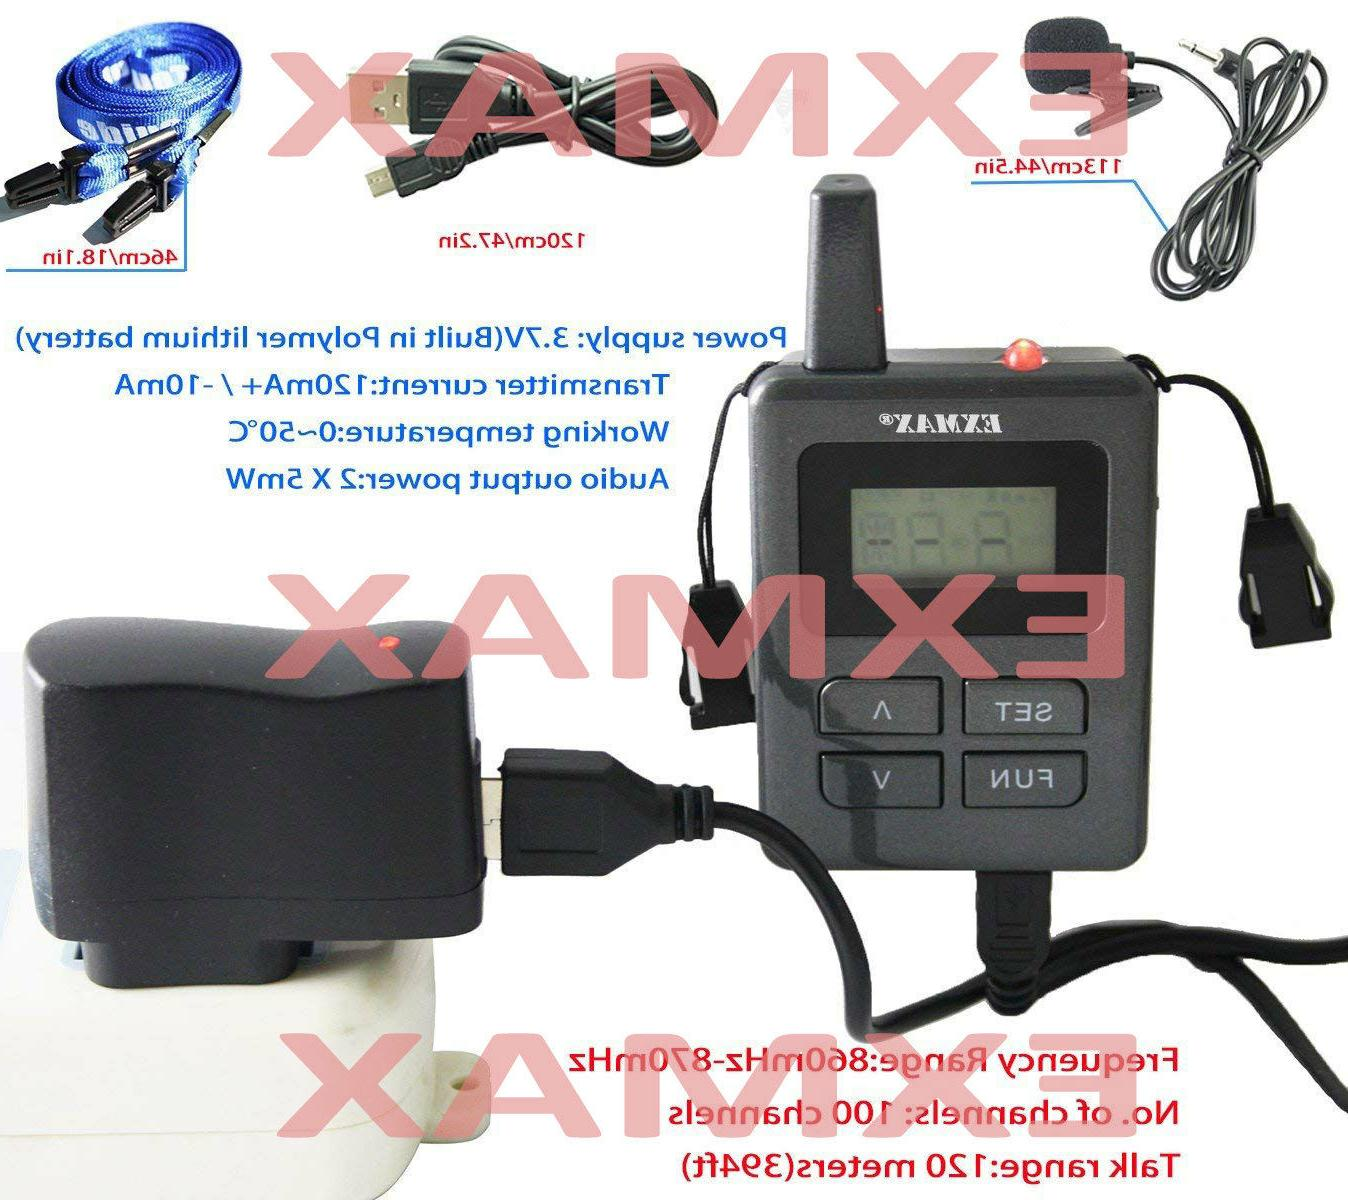 EXMAX 860-870mHz Wireless Tour Guide Mini Ear-hook-1T8R